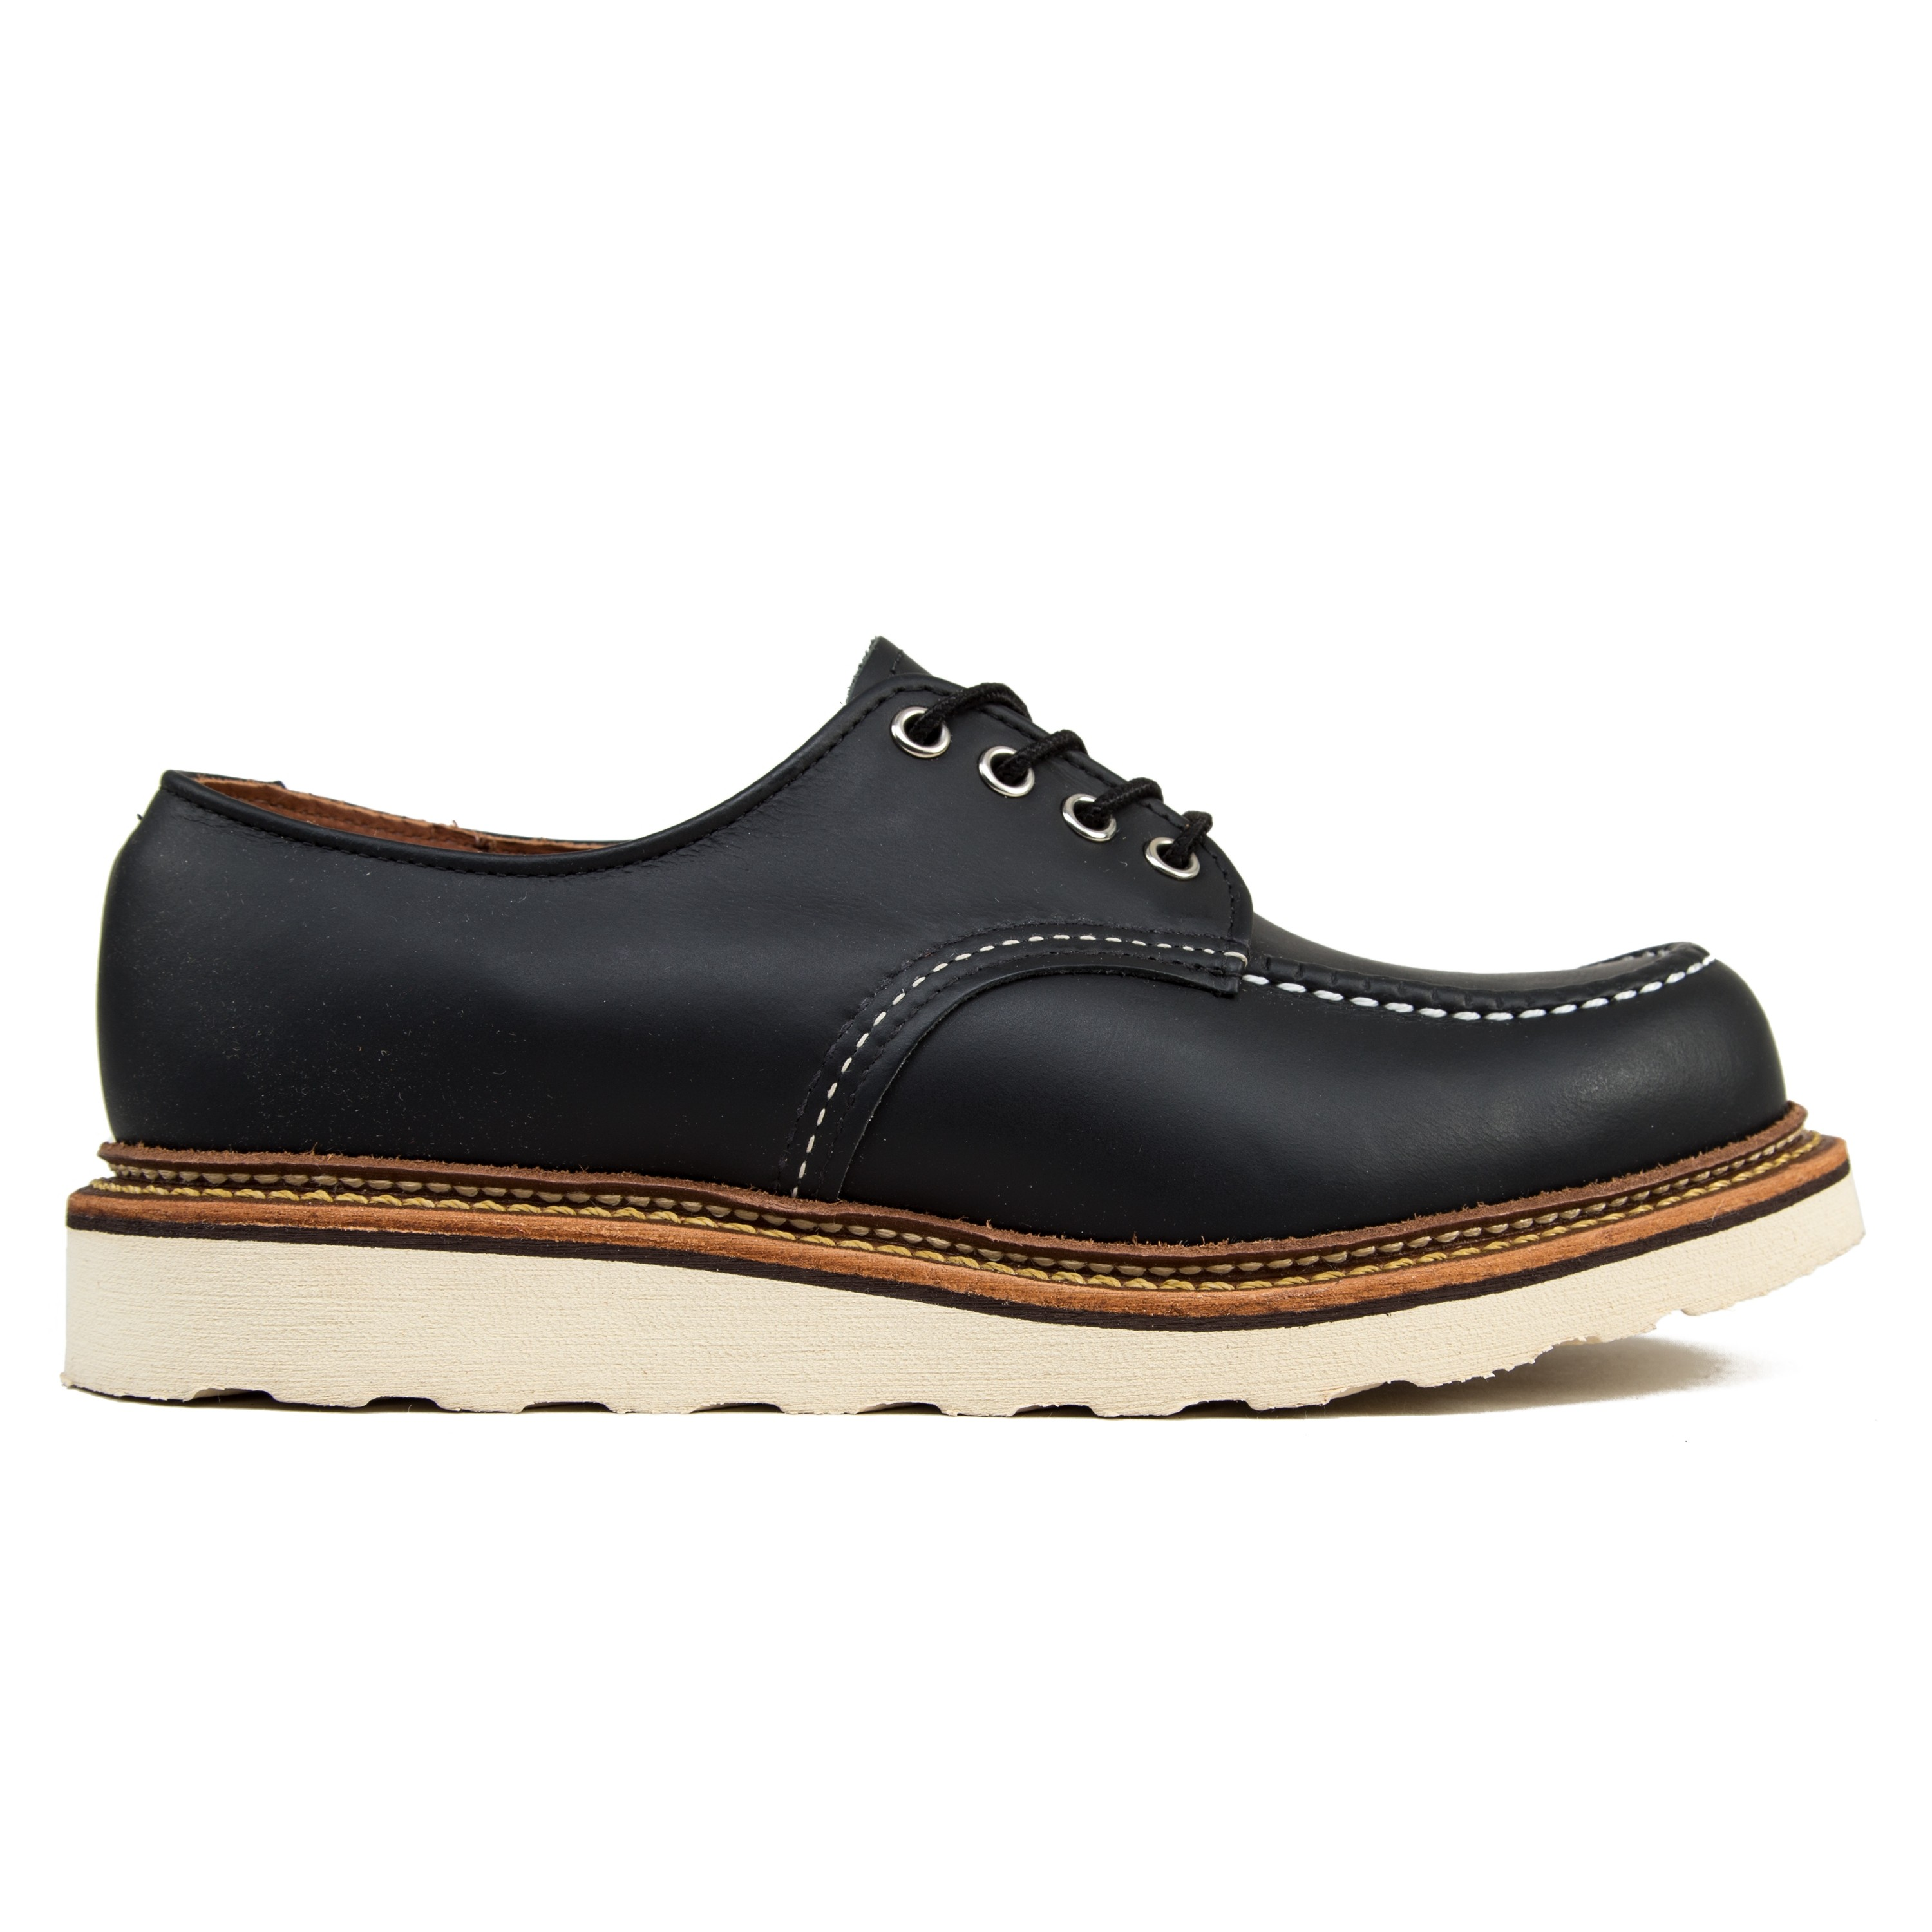 Red Wing 8106 Classic Oxford Moc Toe Shoes Black Chrome Leather